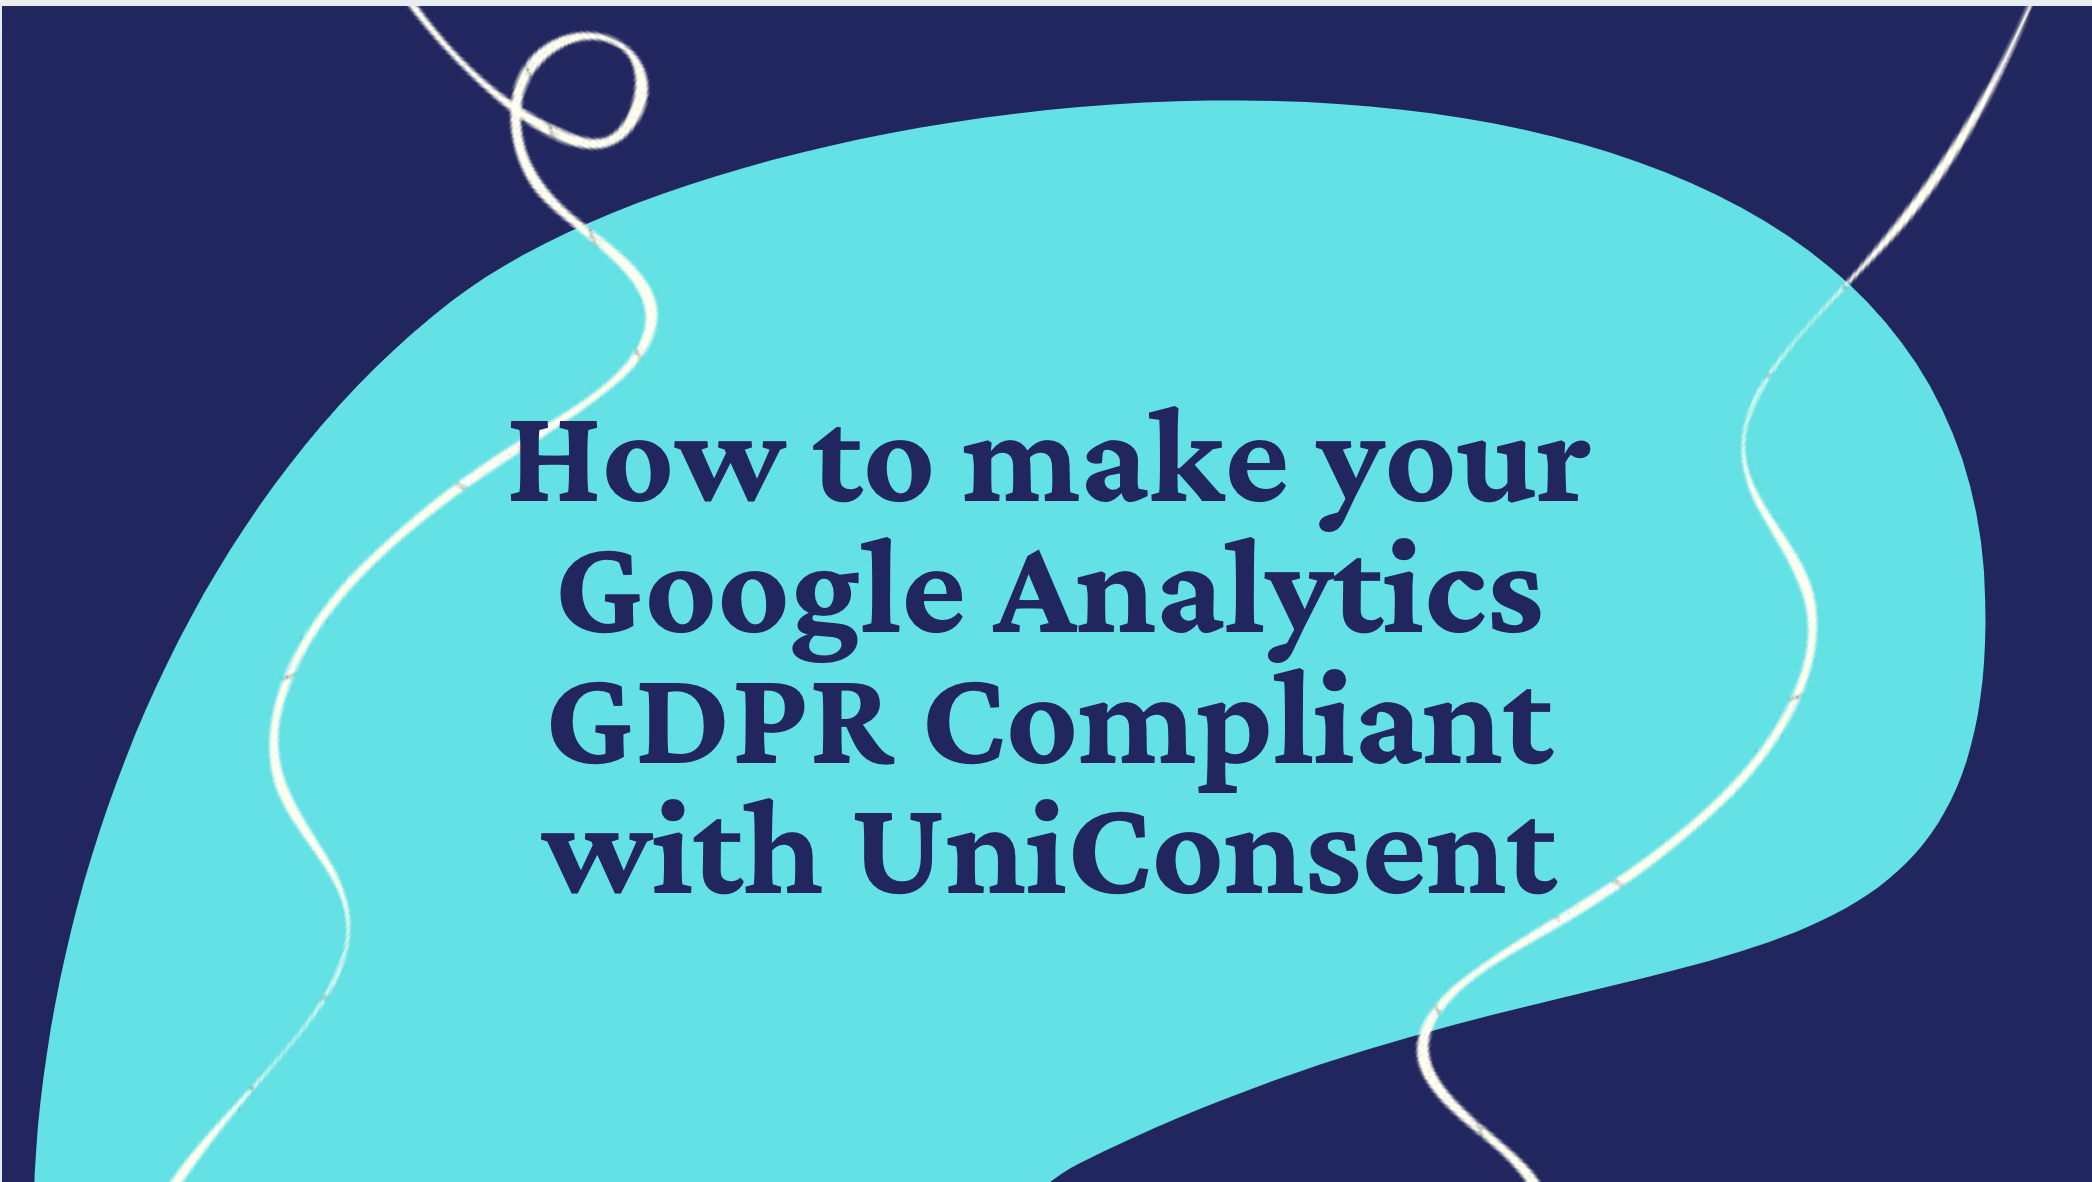 How to make your Google Analytics GDPR Compliant with UniConsent